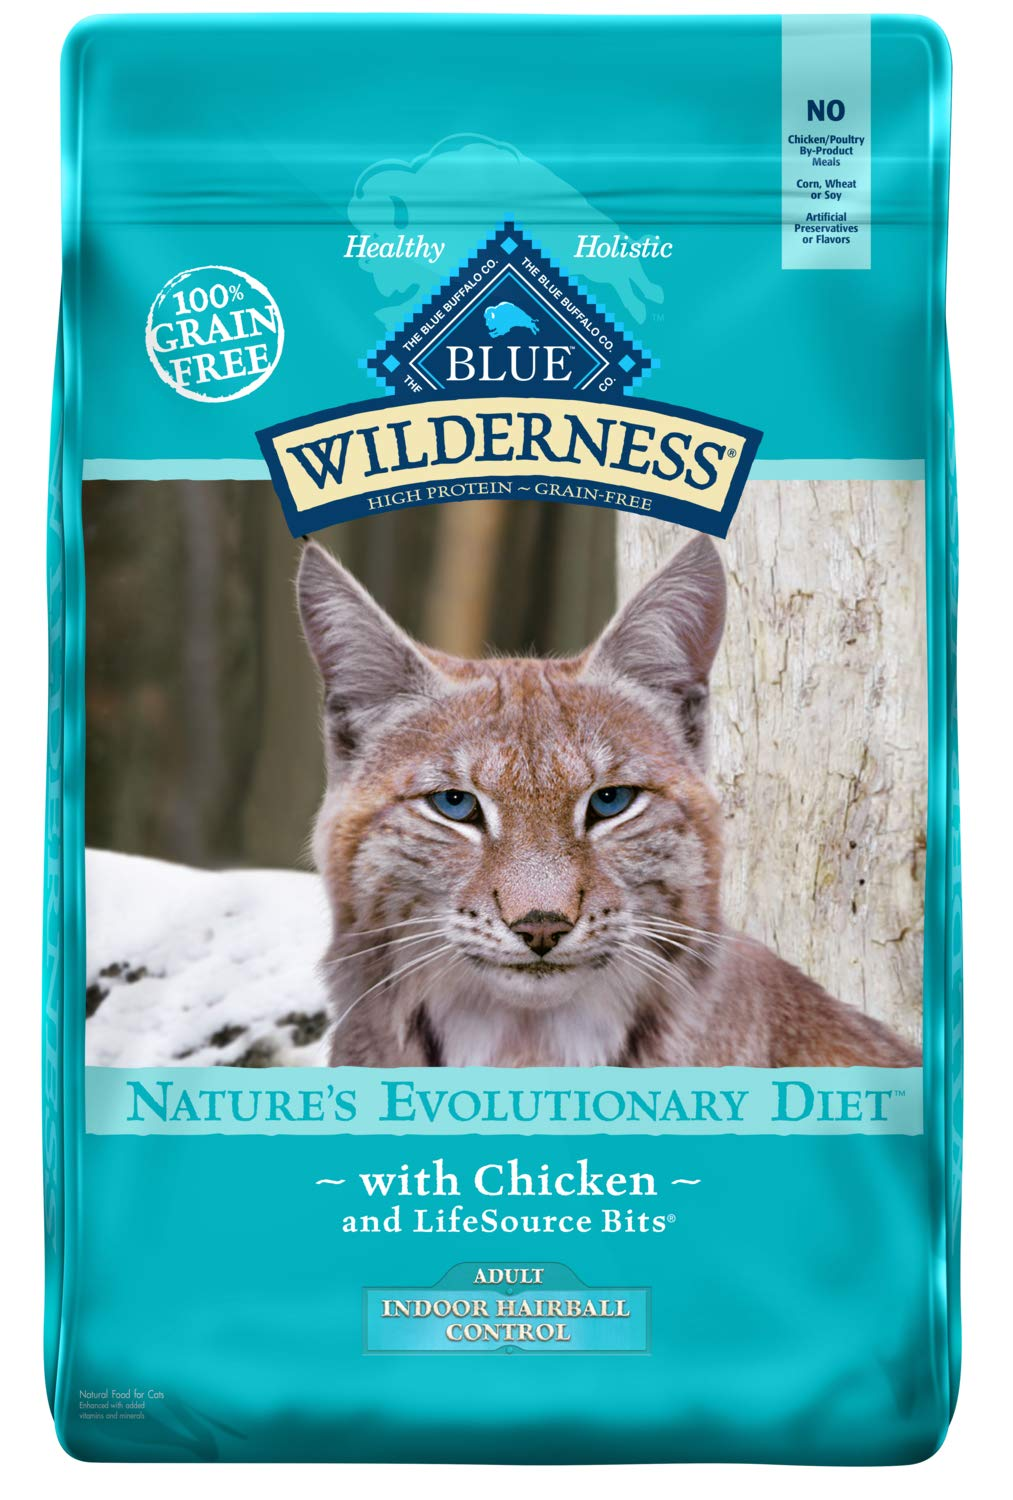 Blue Buffalo Wilderness High Protein Grain Free, Natural Adult Indoor Hairball Control Dry Cat Food